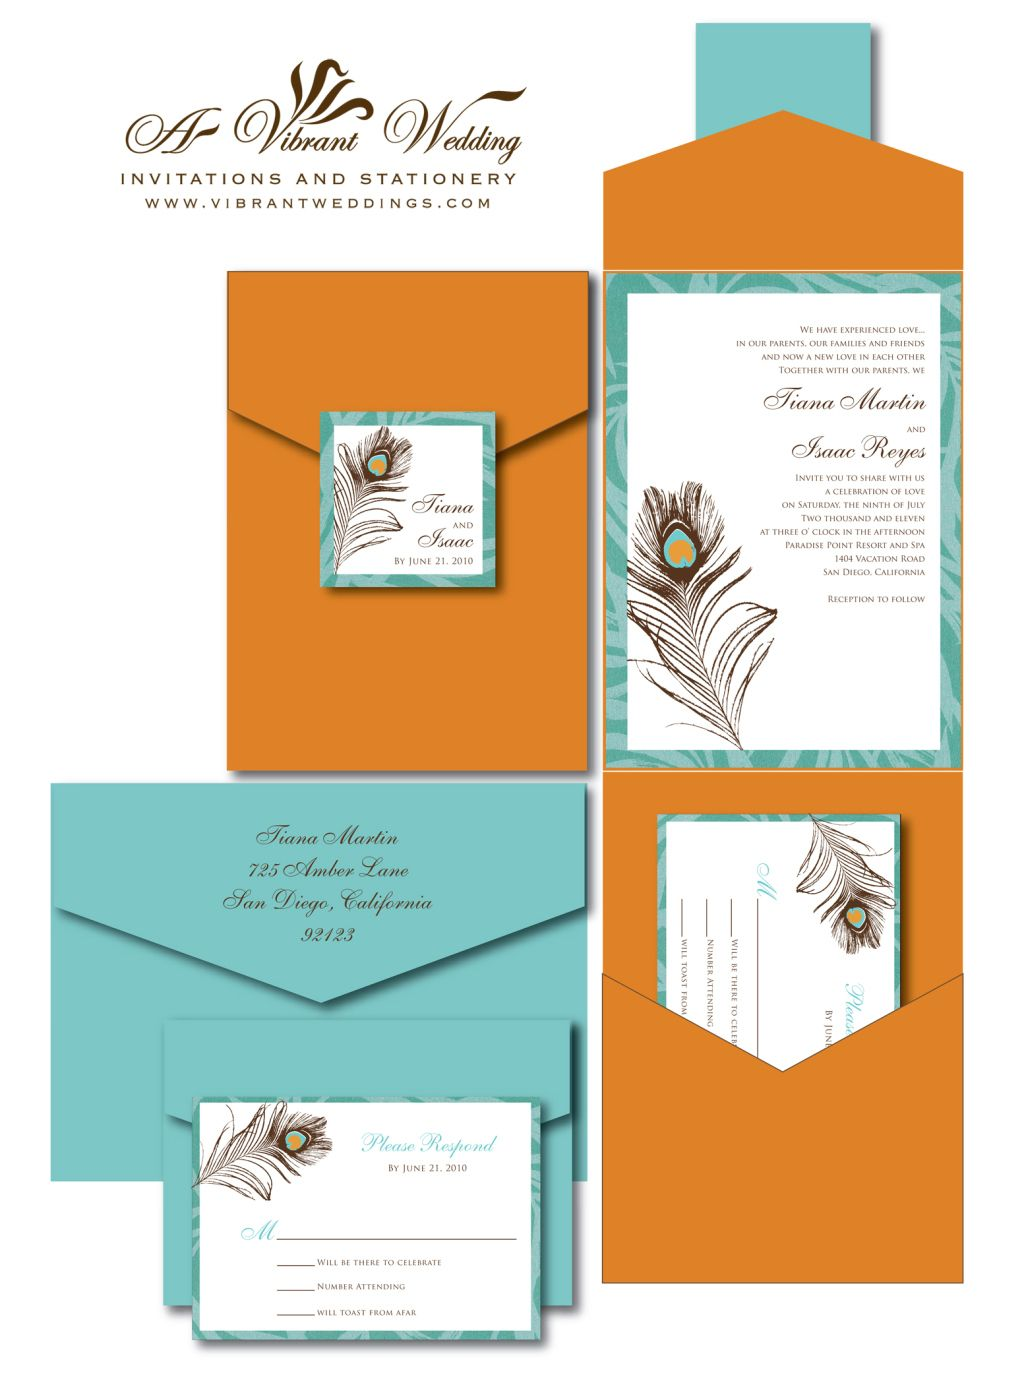 Burnt Orange And Turquoise Wedding Invitation With Peacock Feather